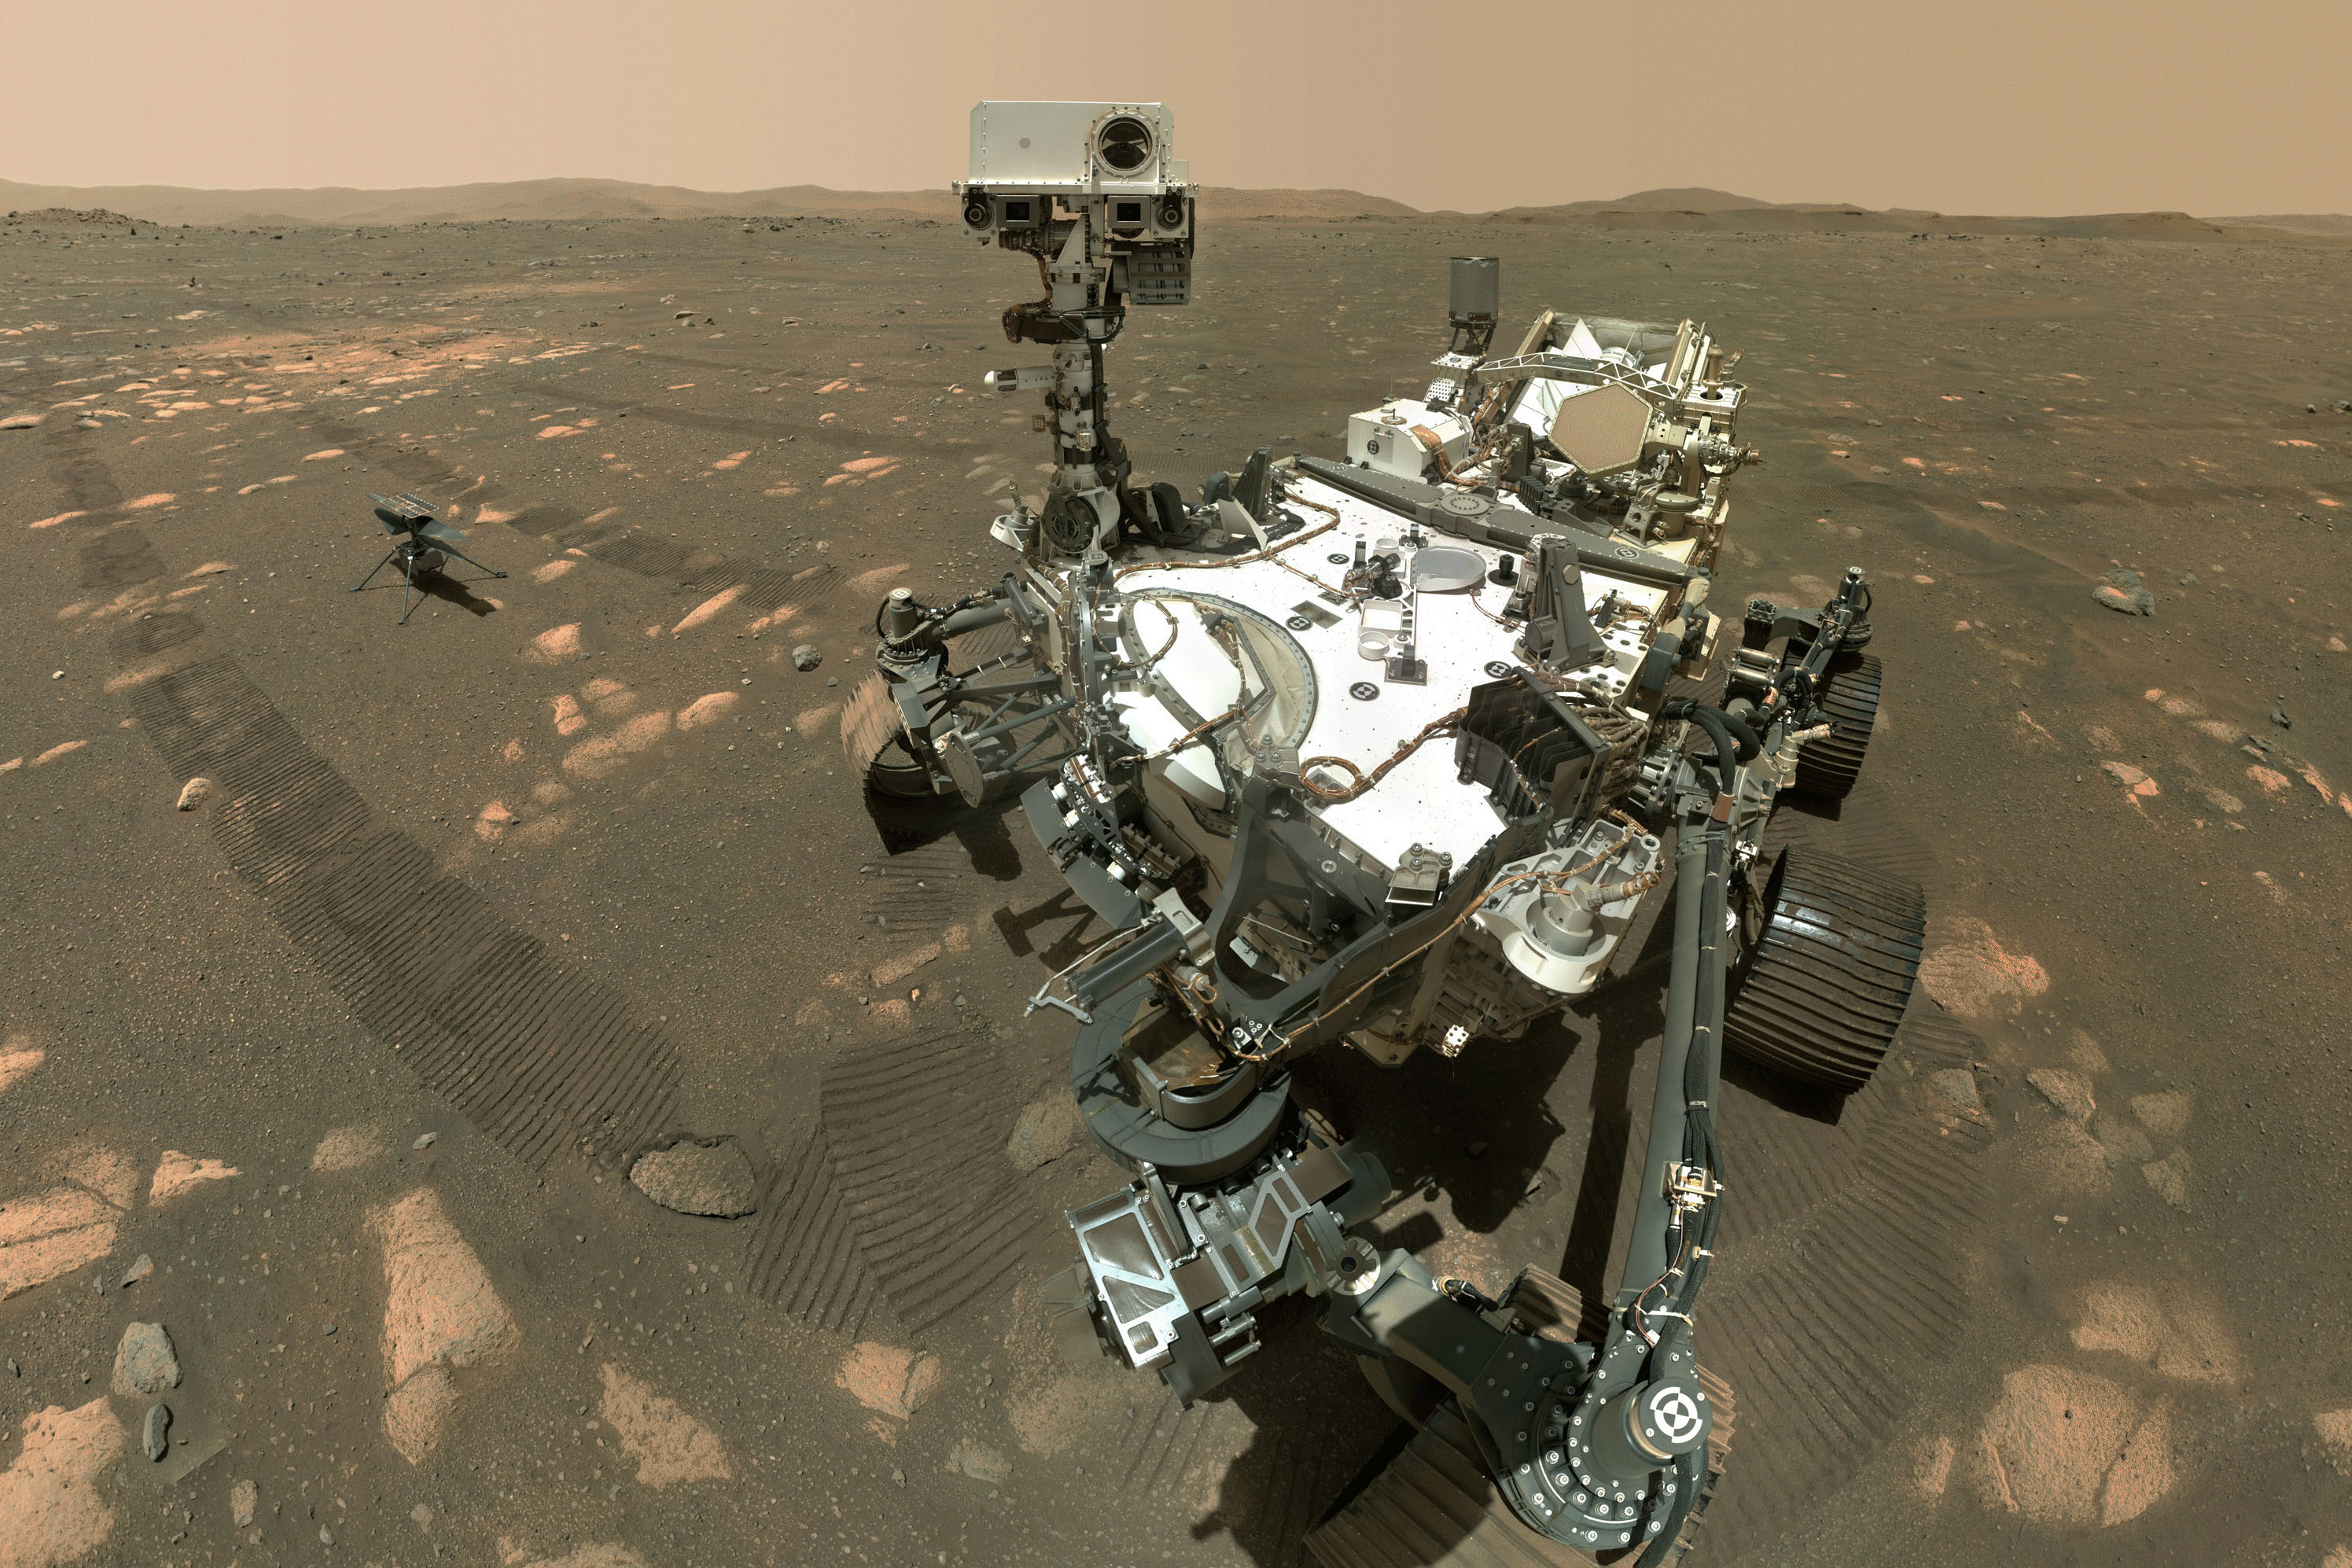 Perseverance arrived in February at Mars' Jezero Crater to look for rocks that might hold evidence of ancient life.